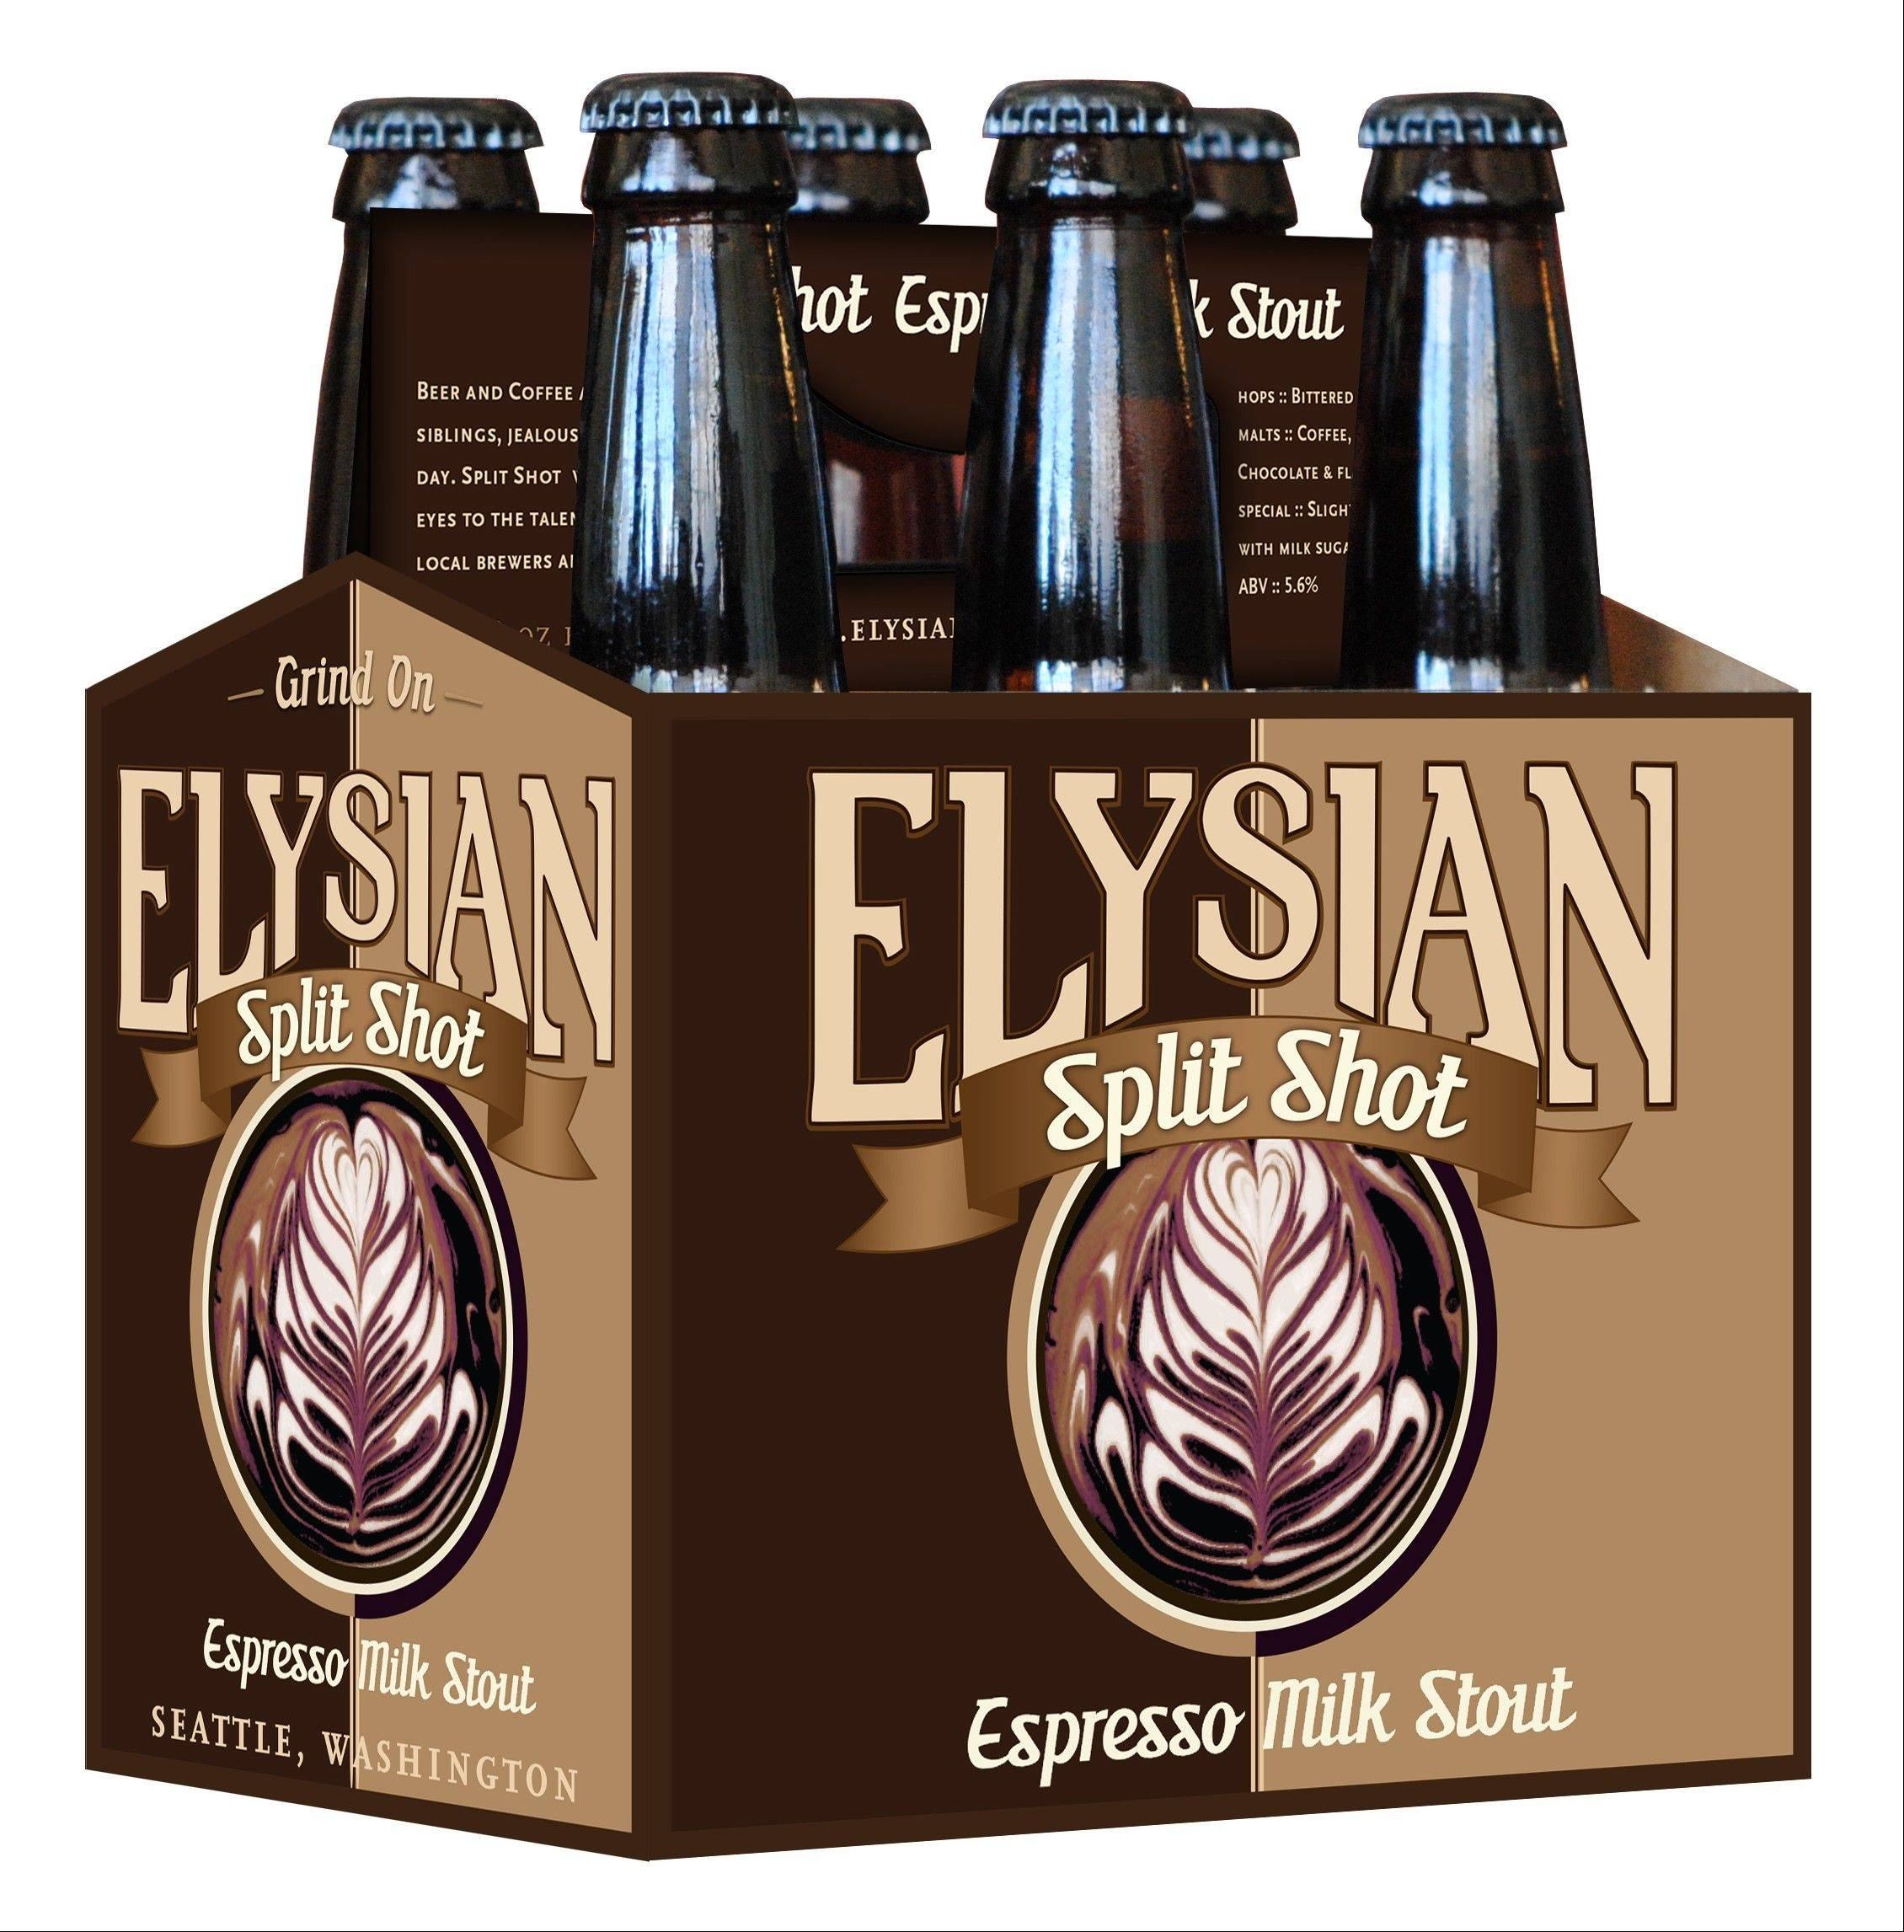 Elysian Brewery's Split Shot Espresso Milk Stout combines sweet cream and rich chocolate flavors with Stumptown Coffee.